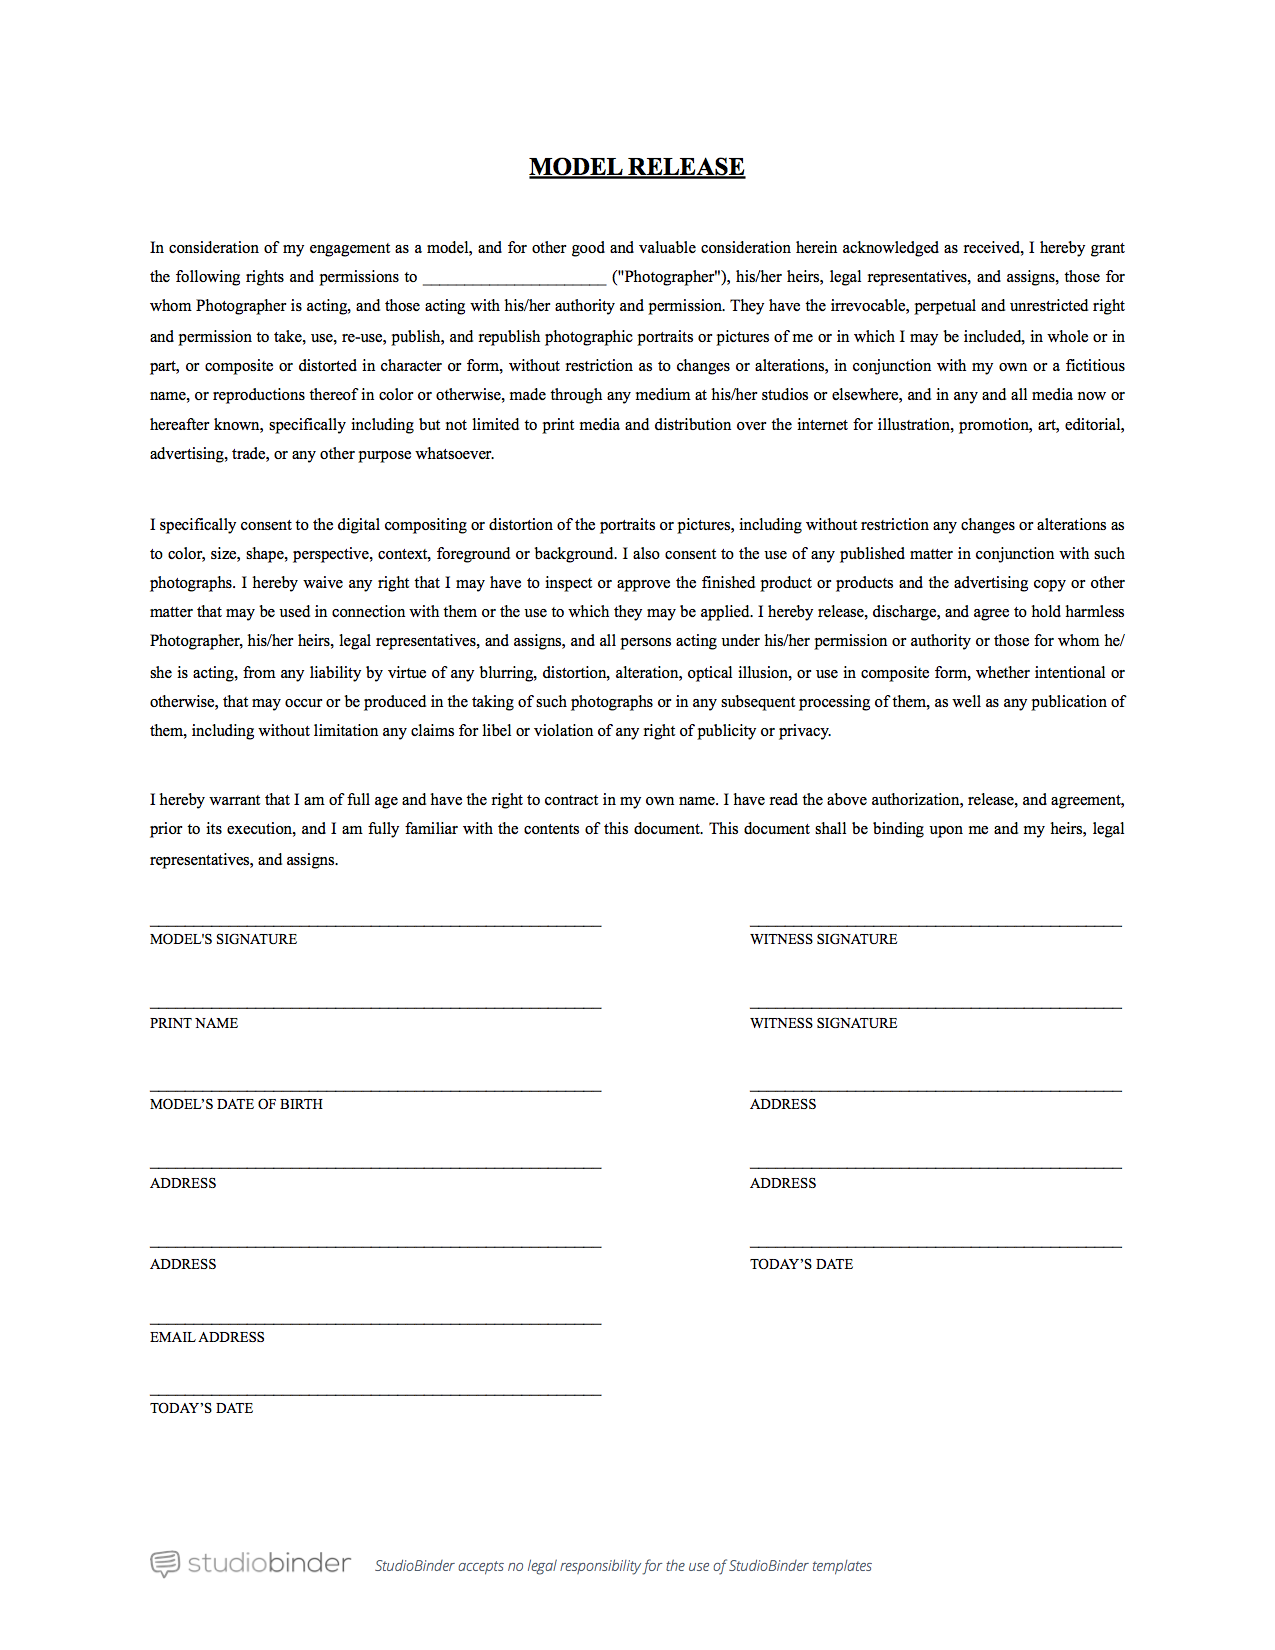 Standard Model Release Form Template For the reasons